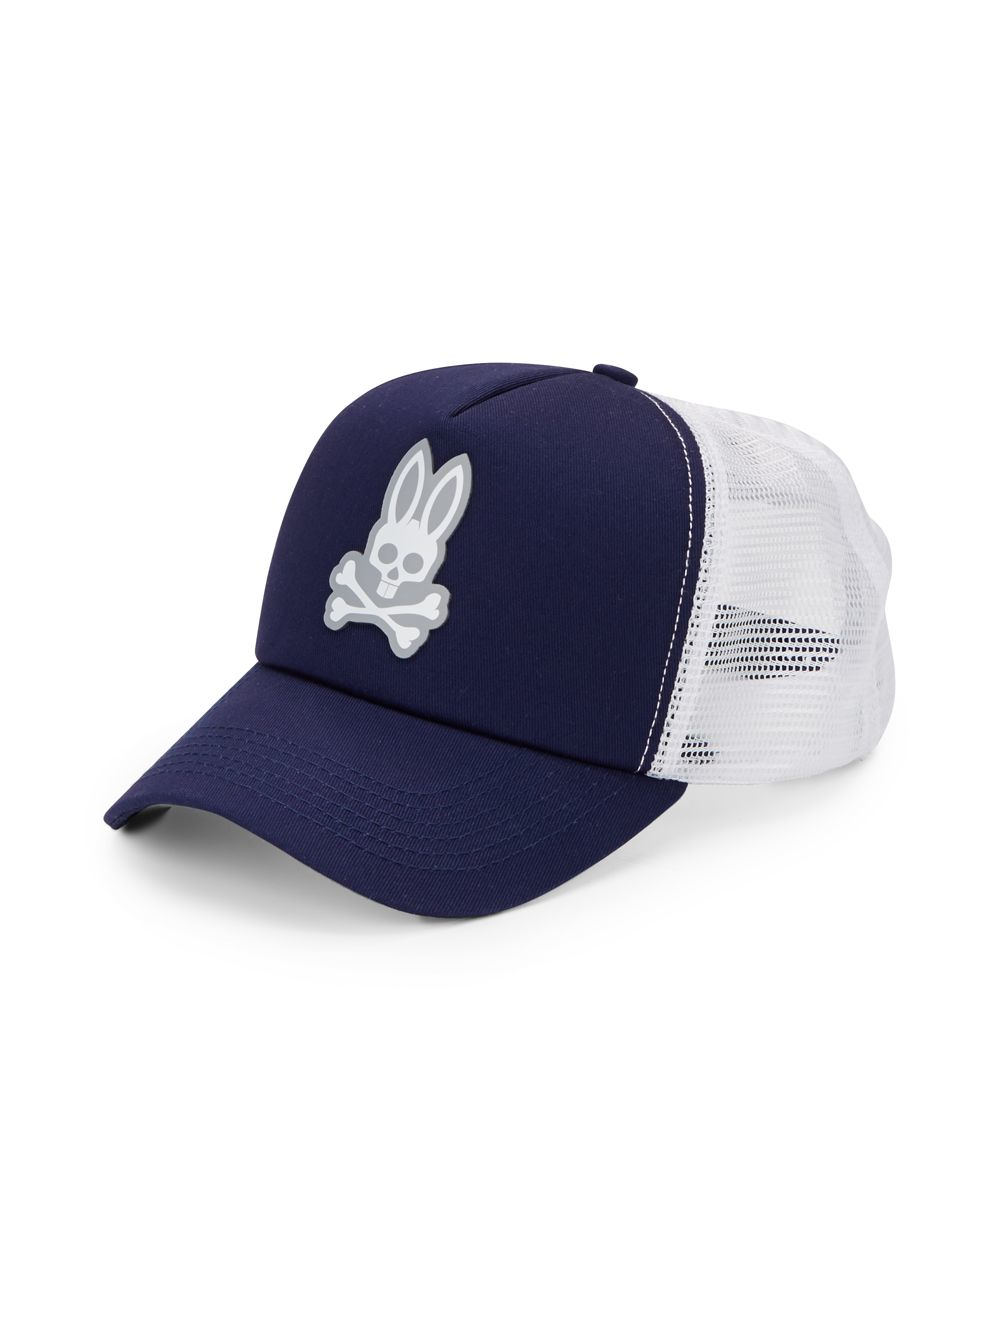 Lyst - Psycho Bunny Perforated Two-tone Baseball Cap in Blue for Men a01a1b7f8f7